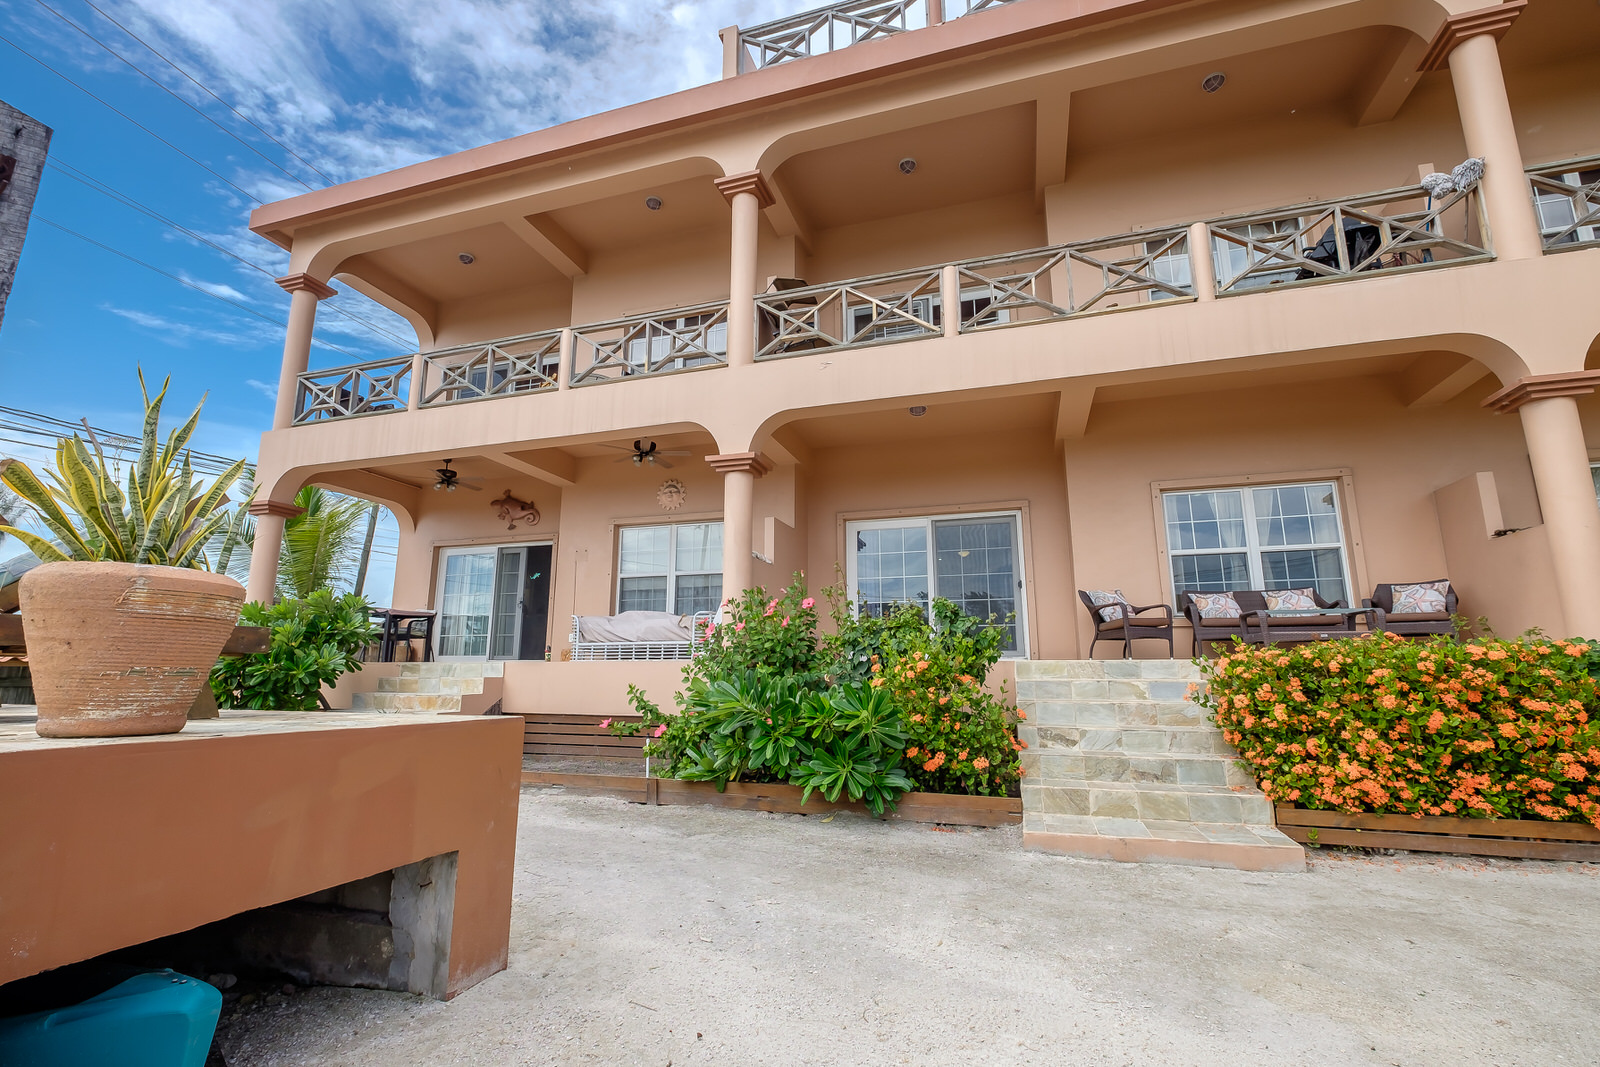 Located just north of the bridge, this condo is only minutes away from downtown San Pedro.